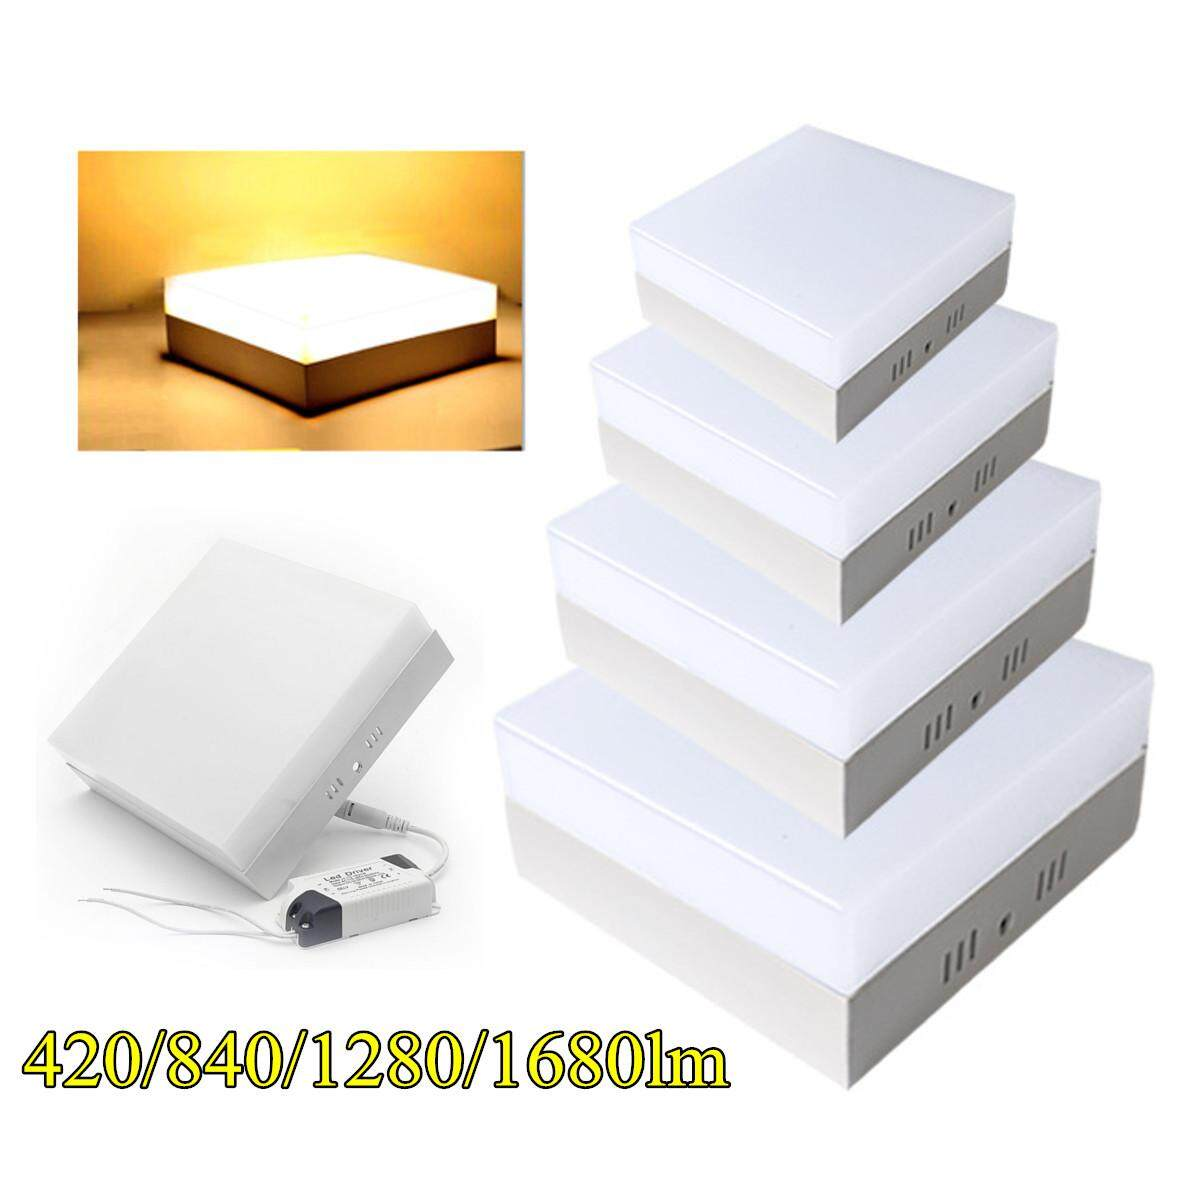 6-24W LED Ceiling Light Square Surface Mount Kitchen Fixture Bedroom Lamp Warm #12W